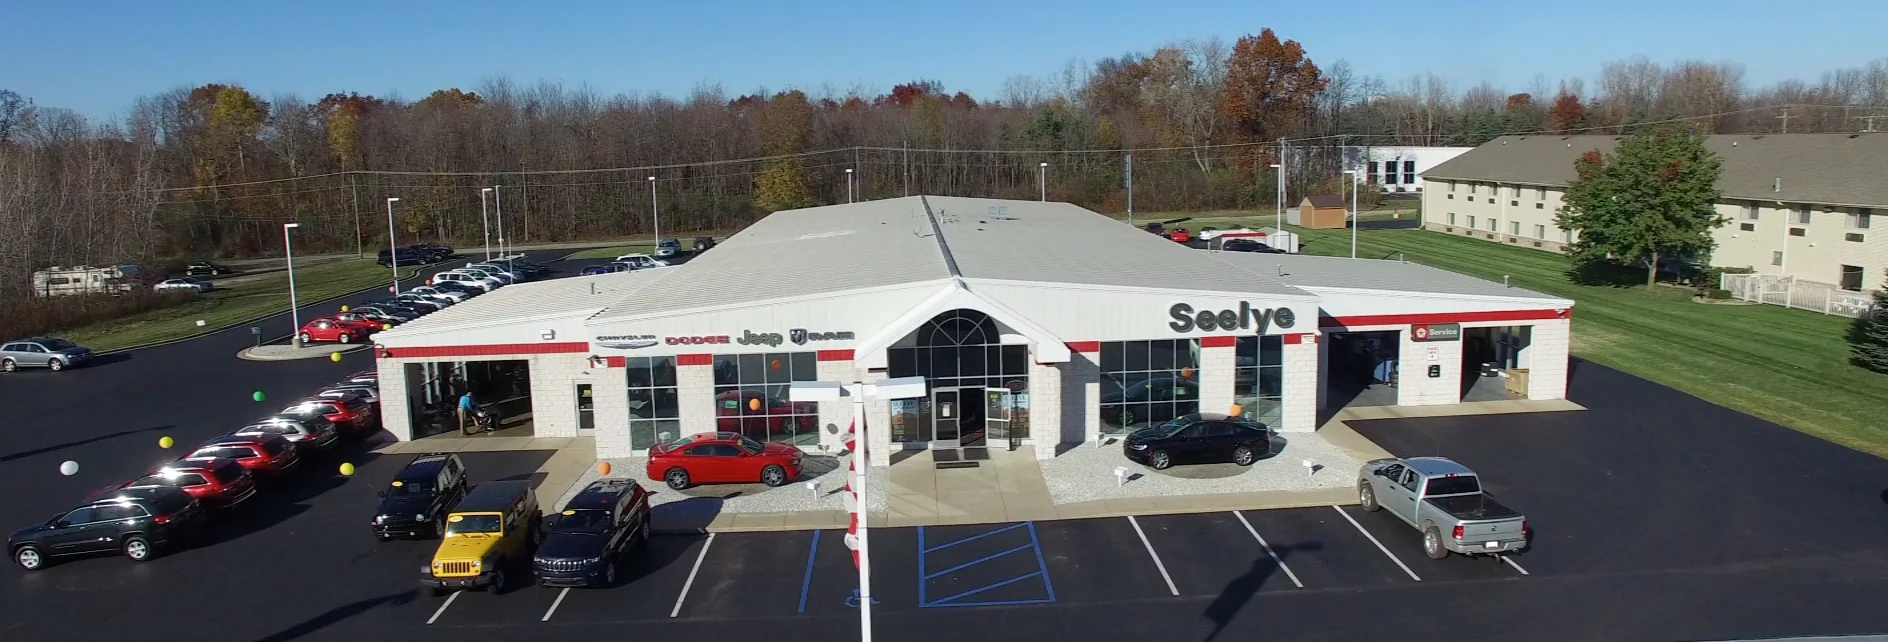 Seelye Paw Paw >> Learn More About Seelye Of Paw Paw Group Dealer In Paw Paw Mi